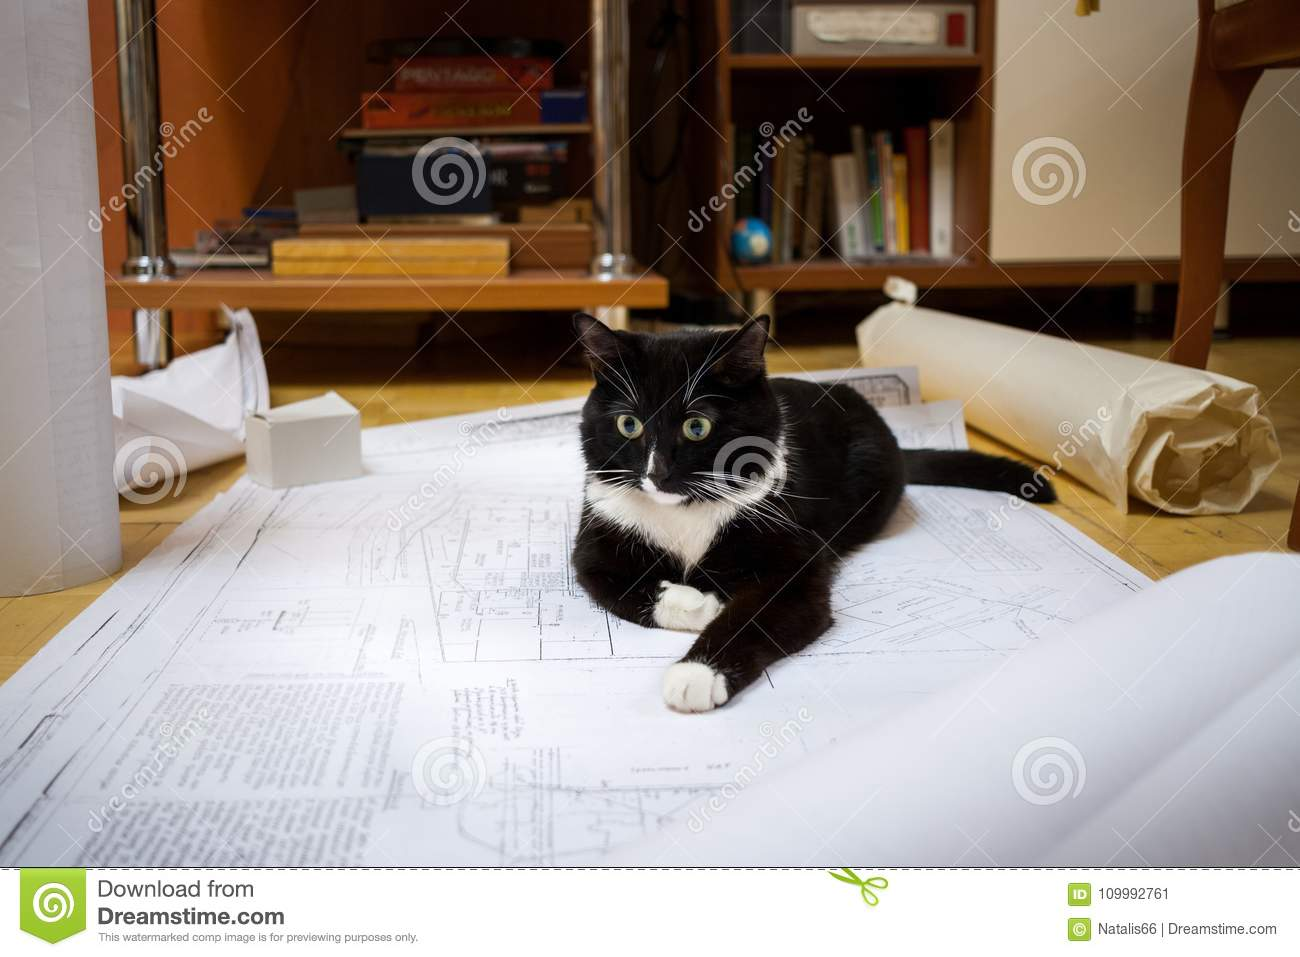 Black and white cat is lying on the floor on the drawings.